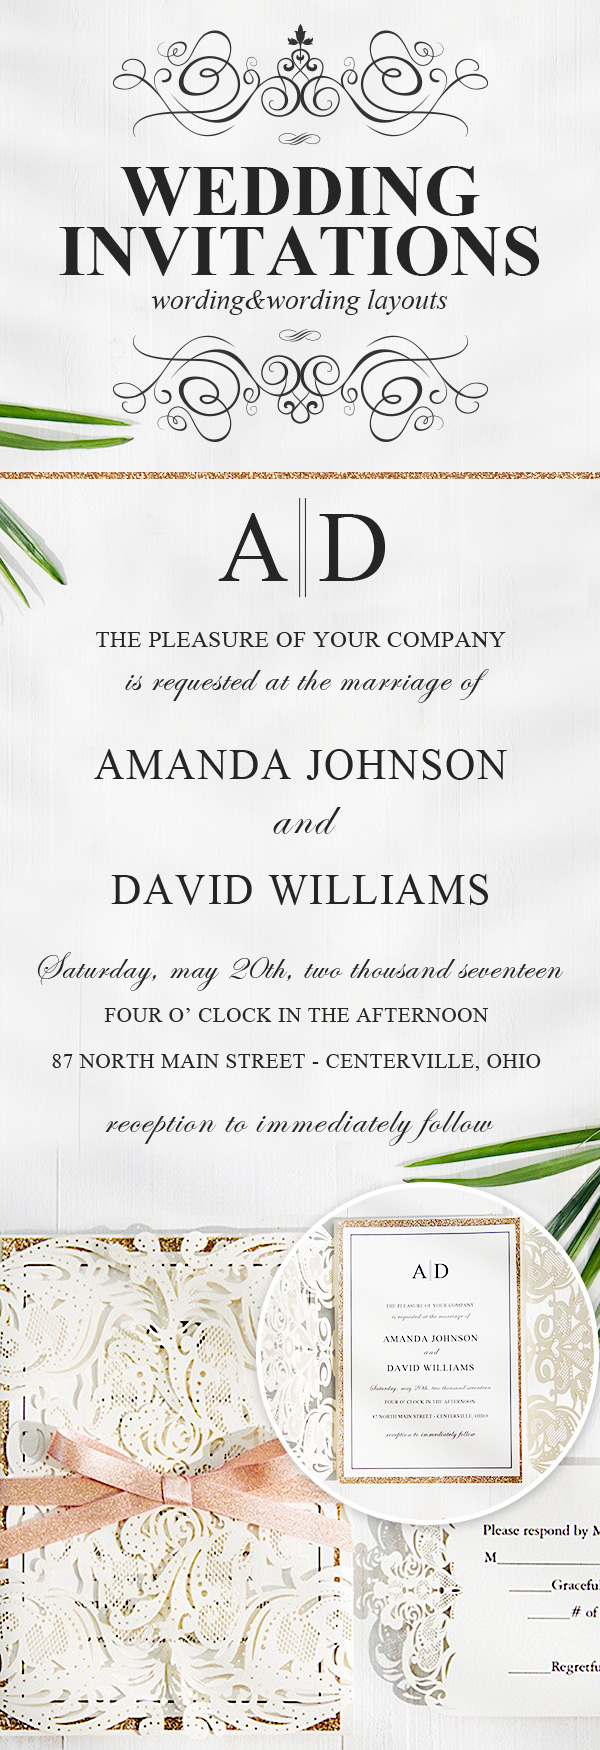 15 Unique Wedding Invitation Wording Ideas